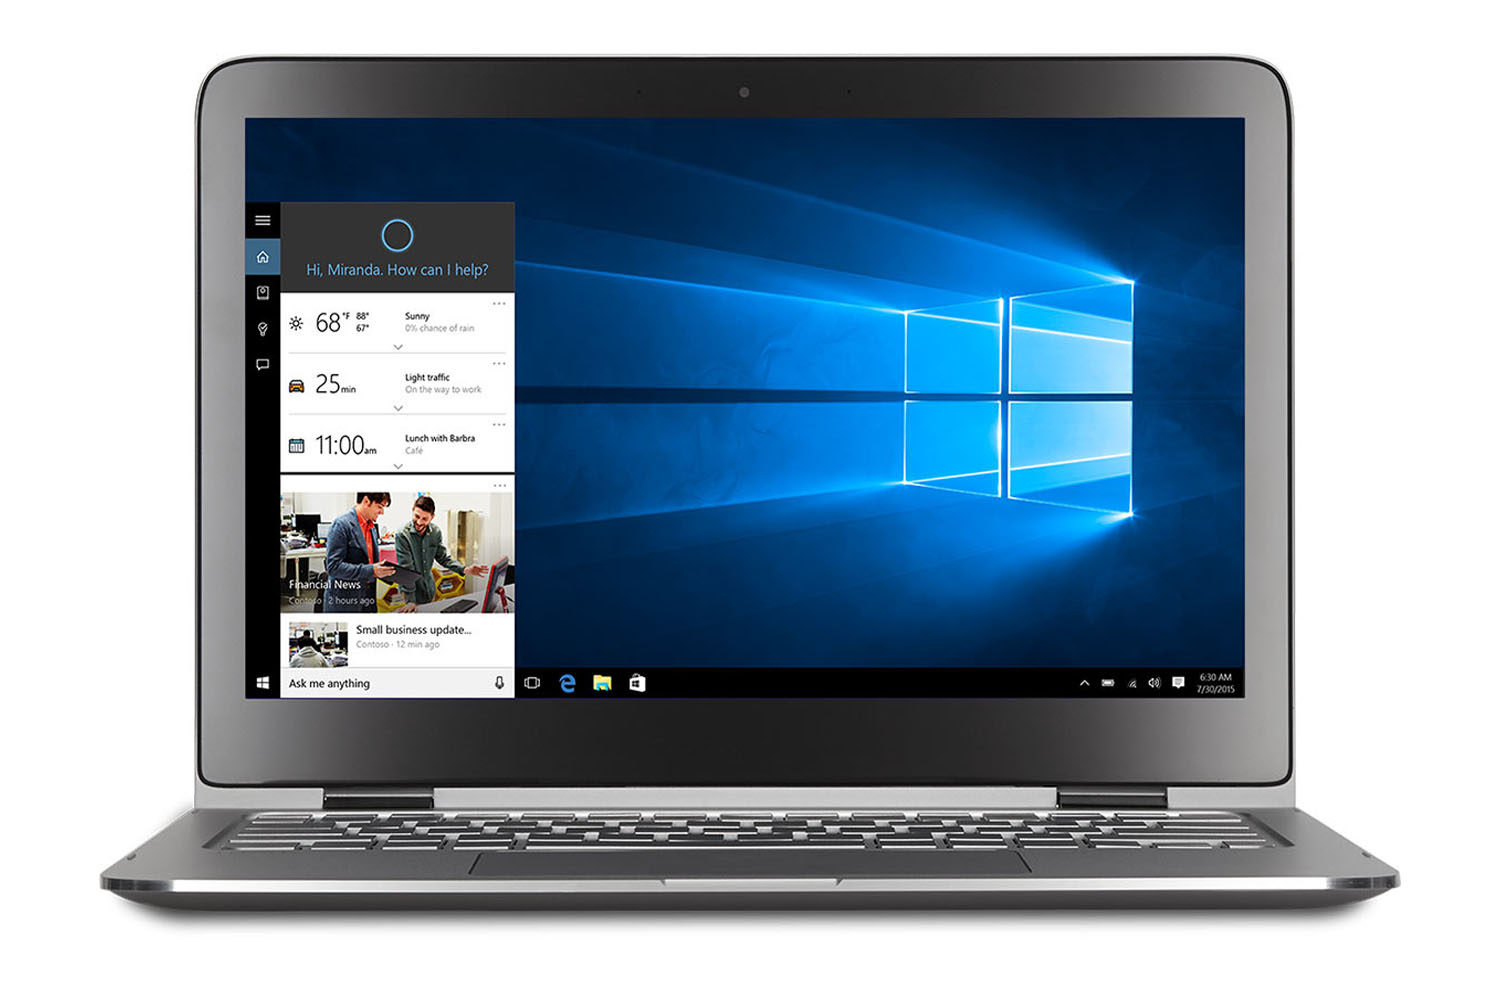 The 5 Things Windows 10 Doesn't Have